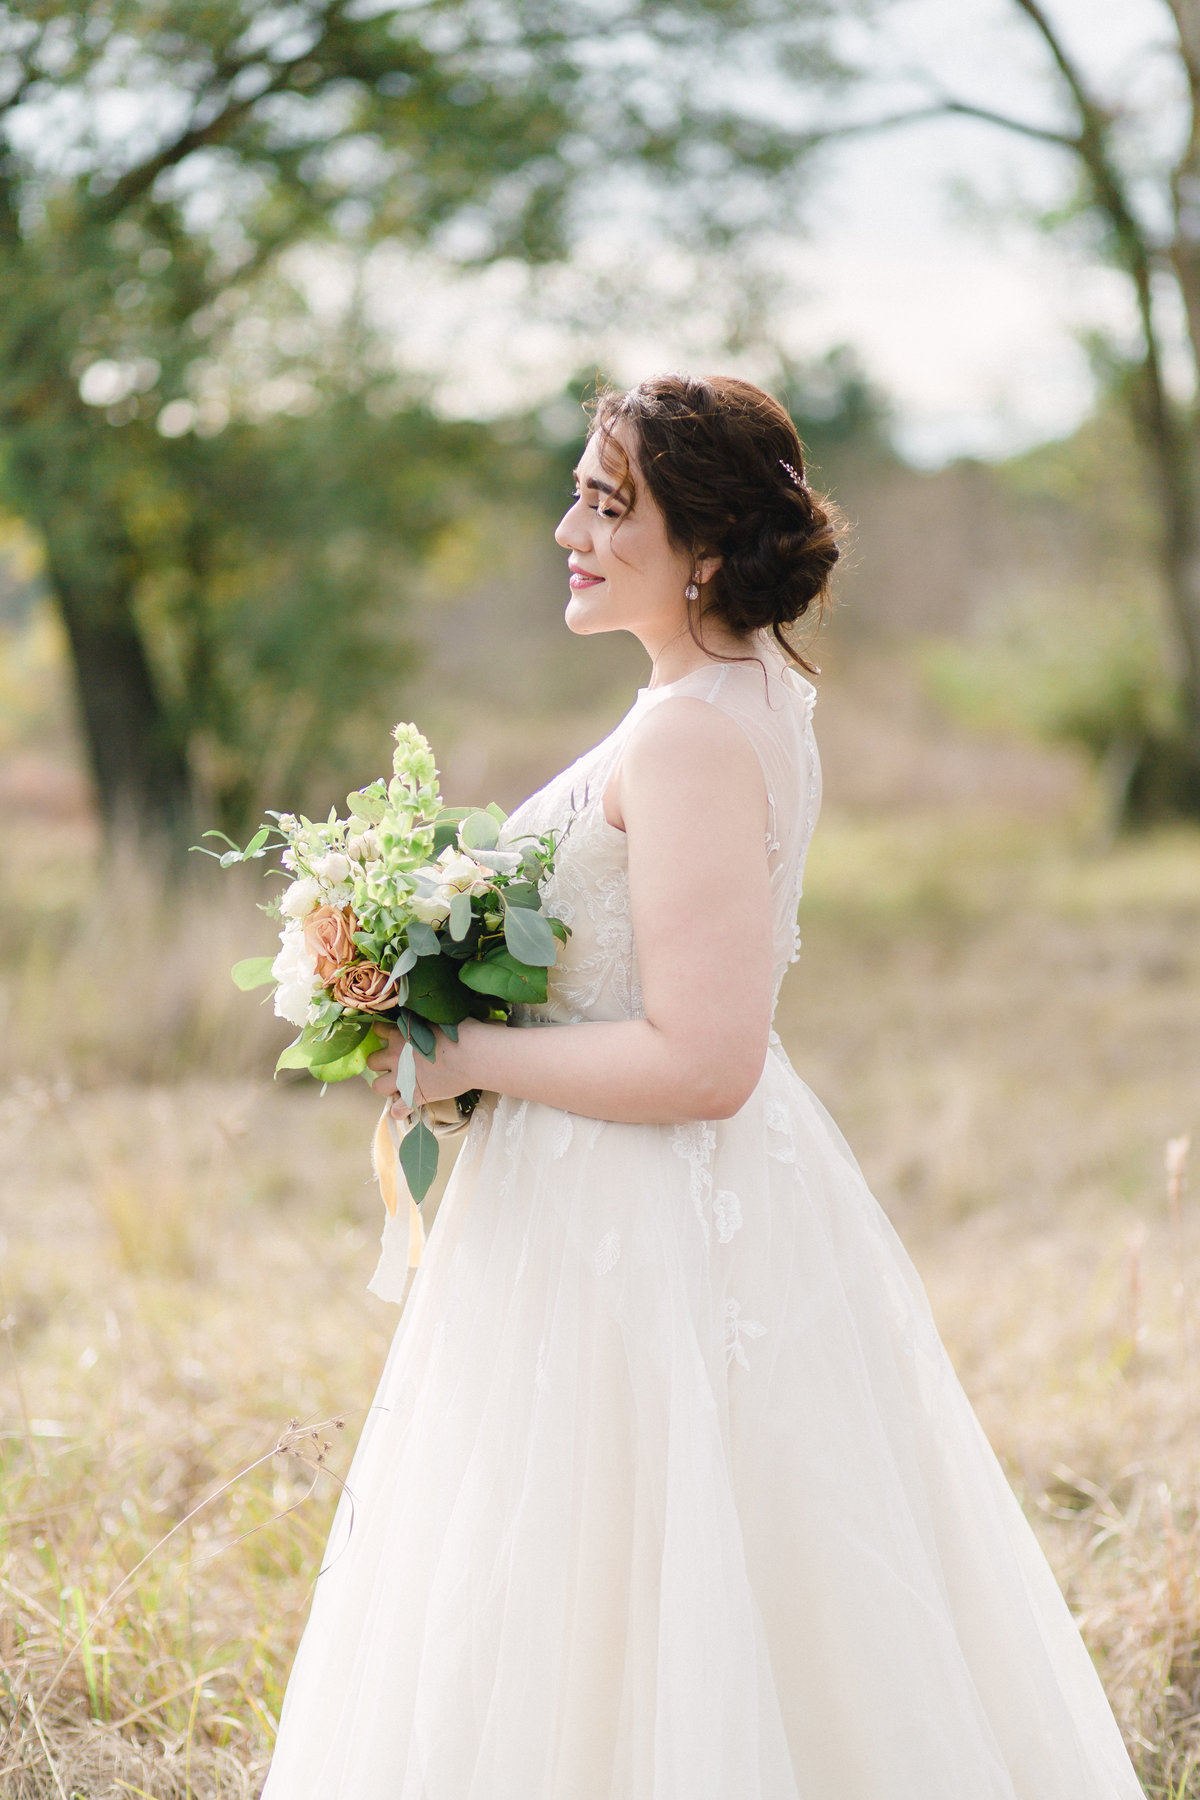 The-woodlands-bridal-session-alicia-yarrish-photography-25